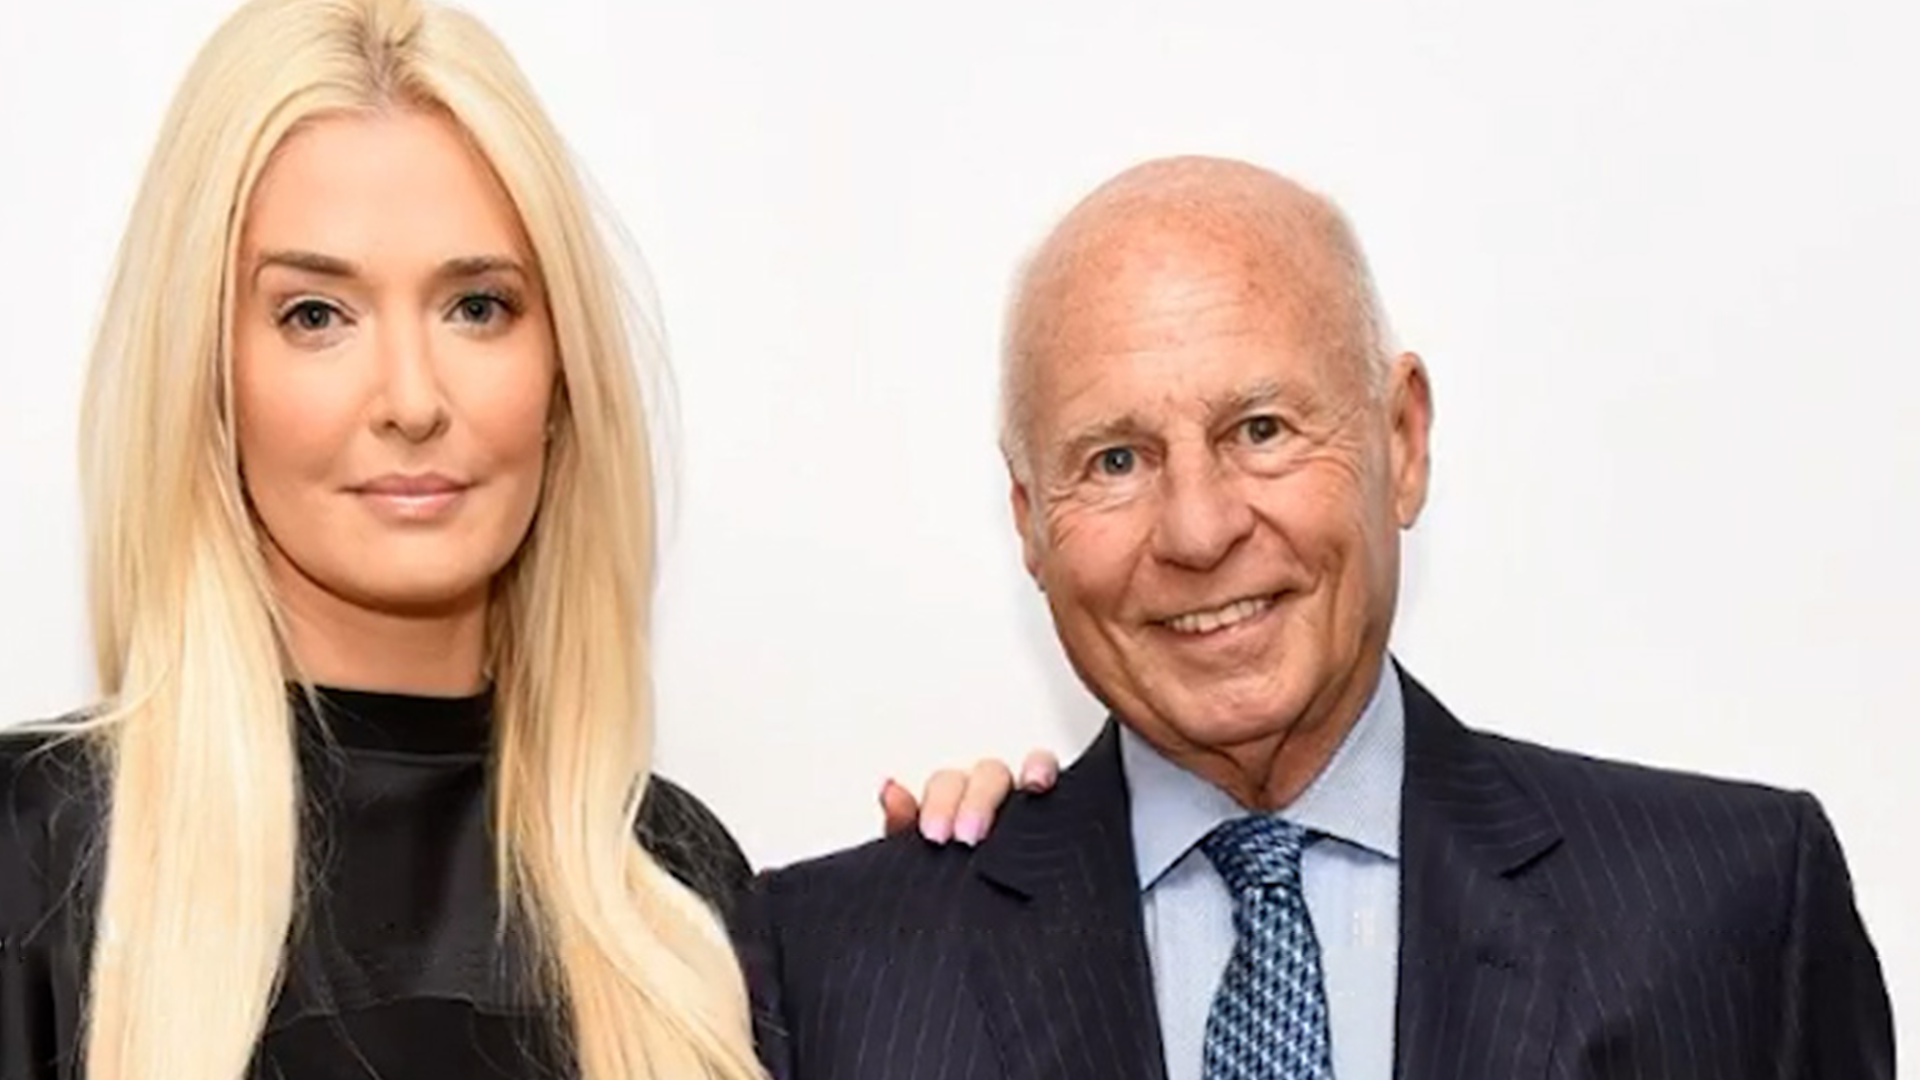 Lawyer discusses Erika Jayne and Tom Girardi's financial issues